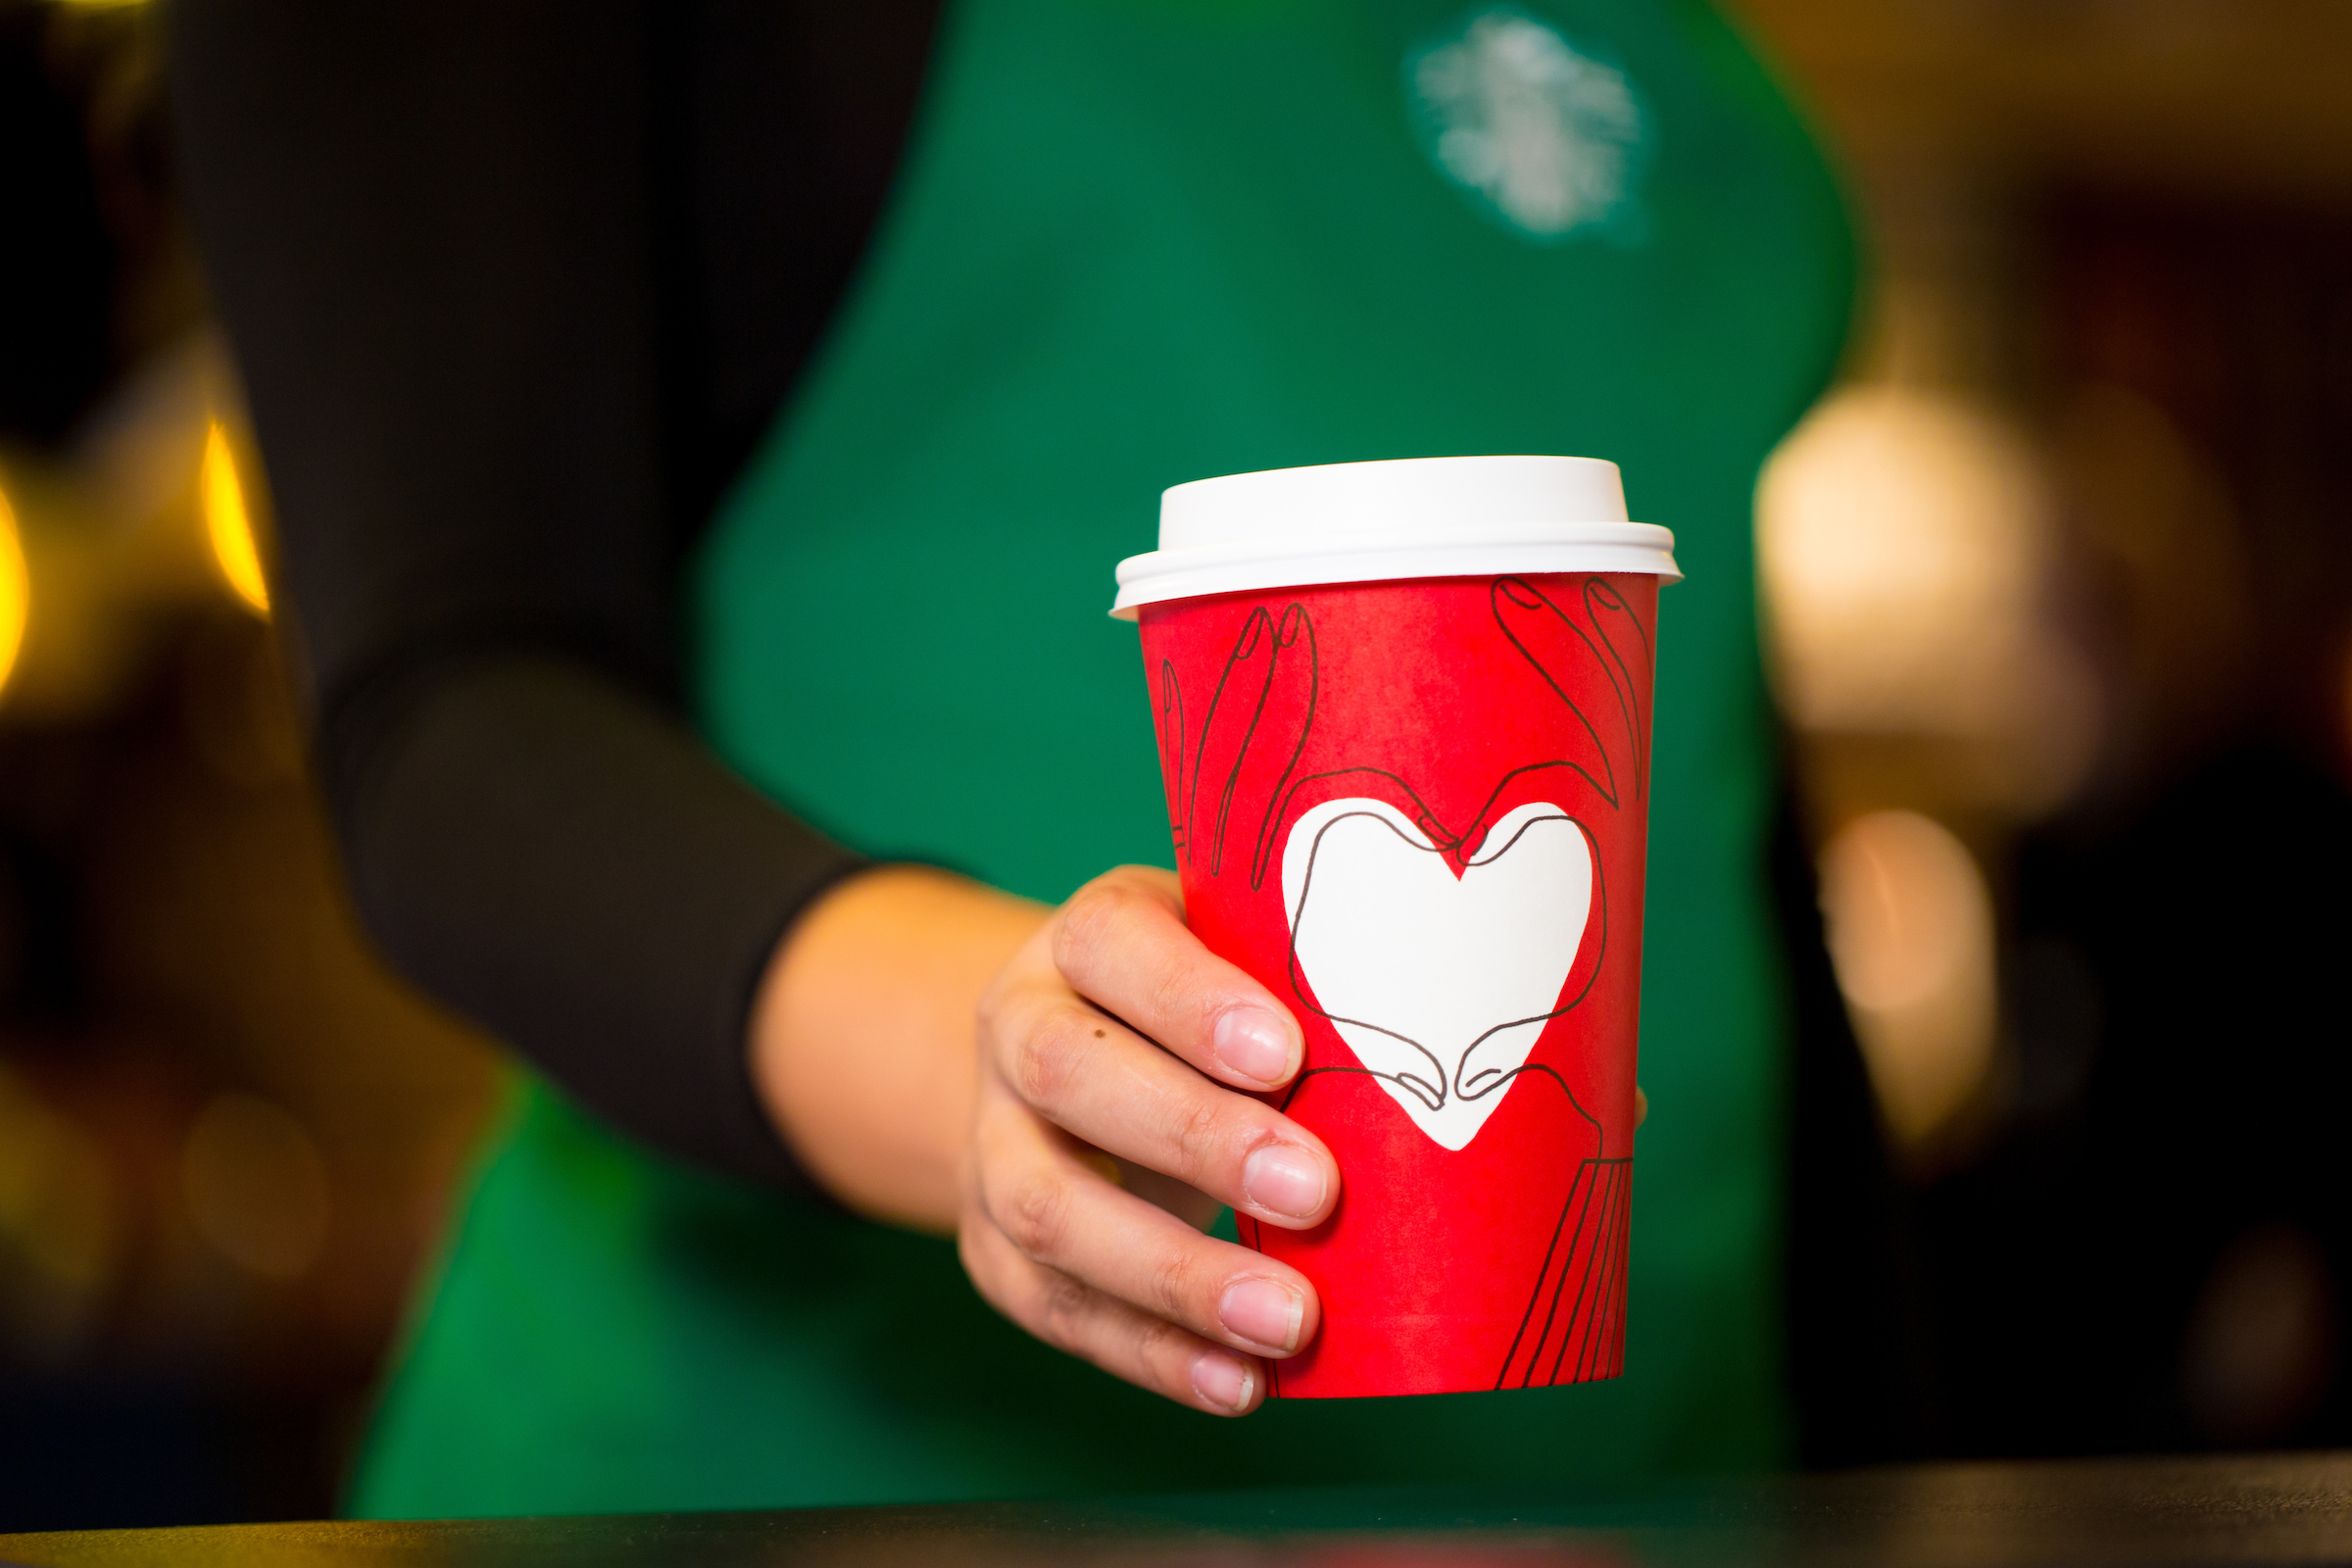 Starbucks' 2017 holiday cup.